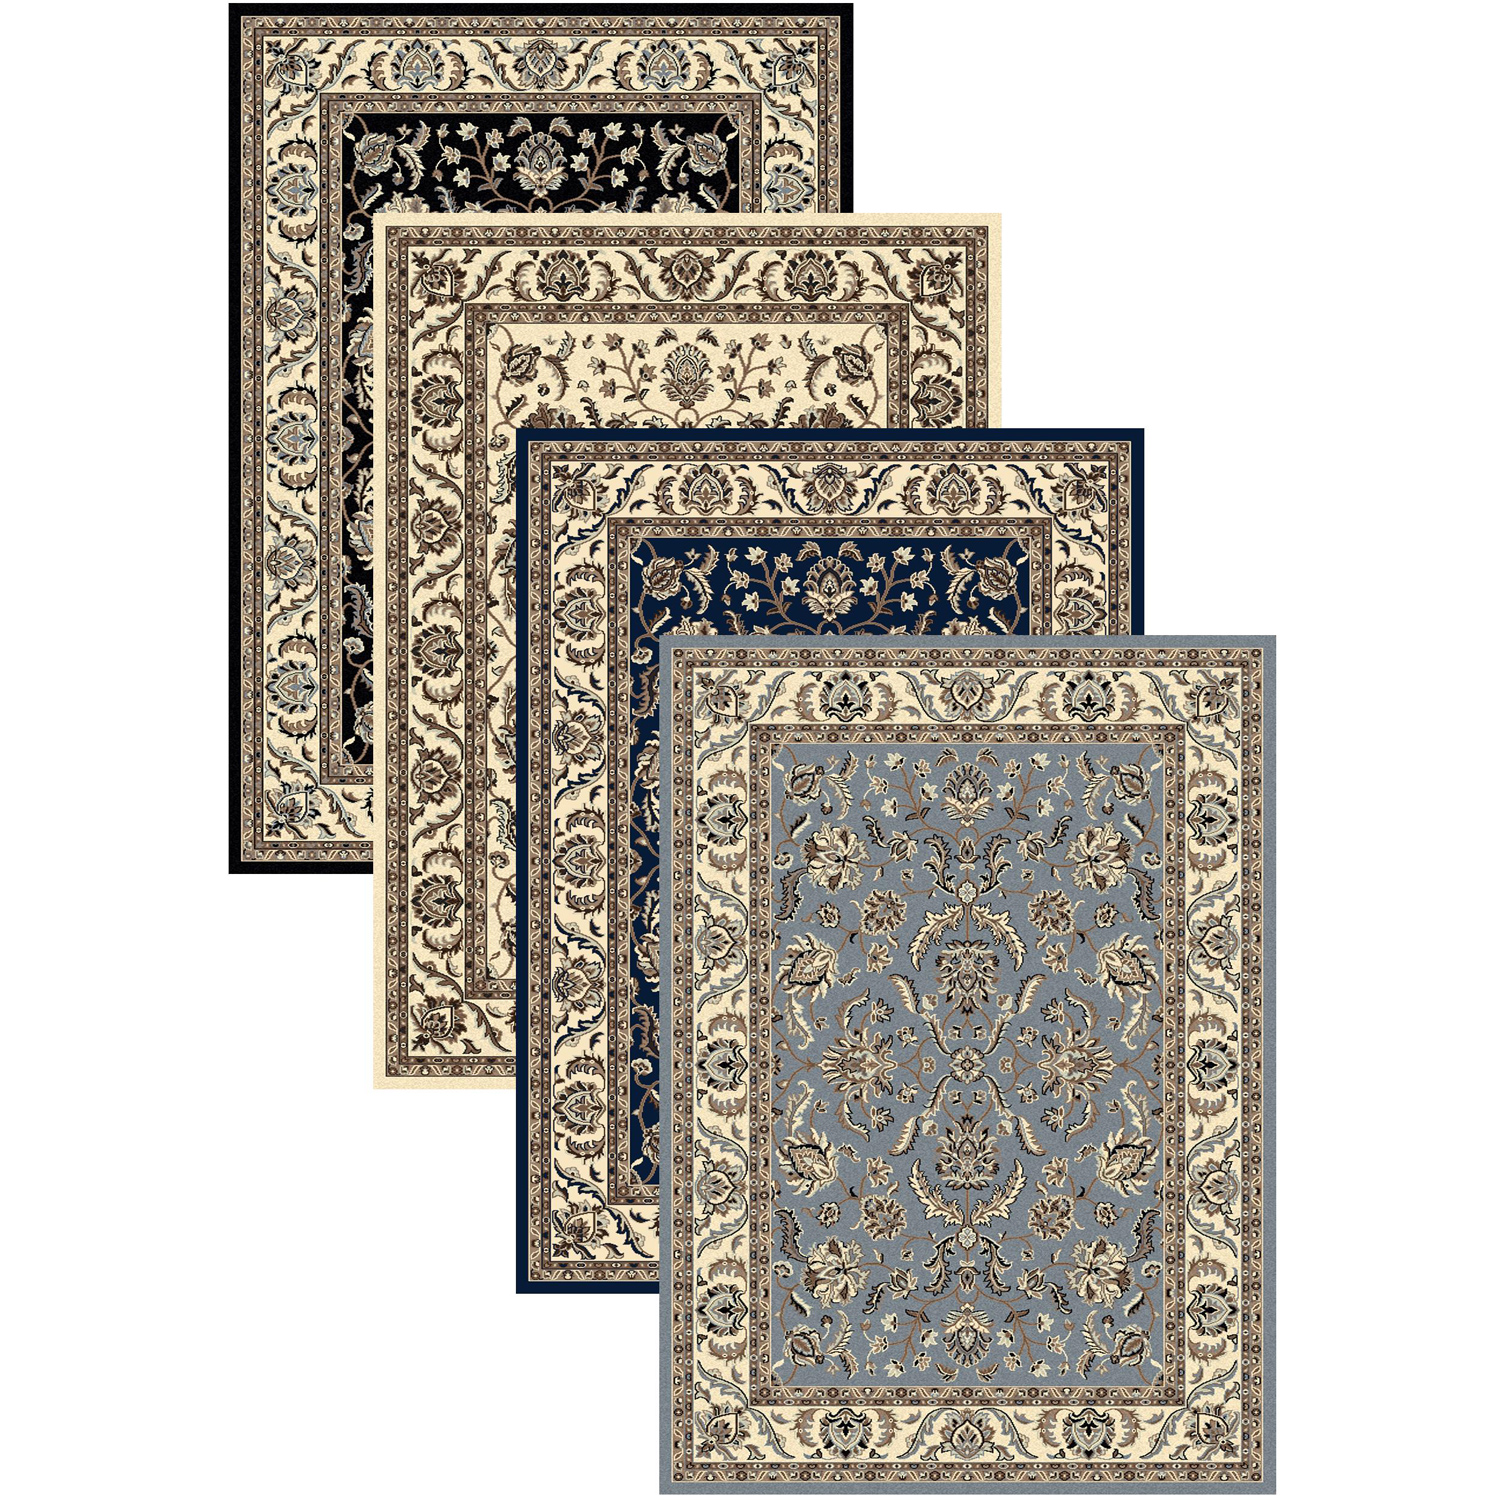 elegant lowes rugs in multichoice color for floor decor ideas